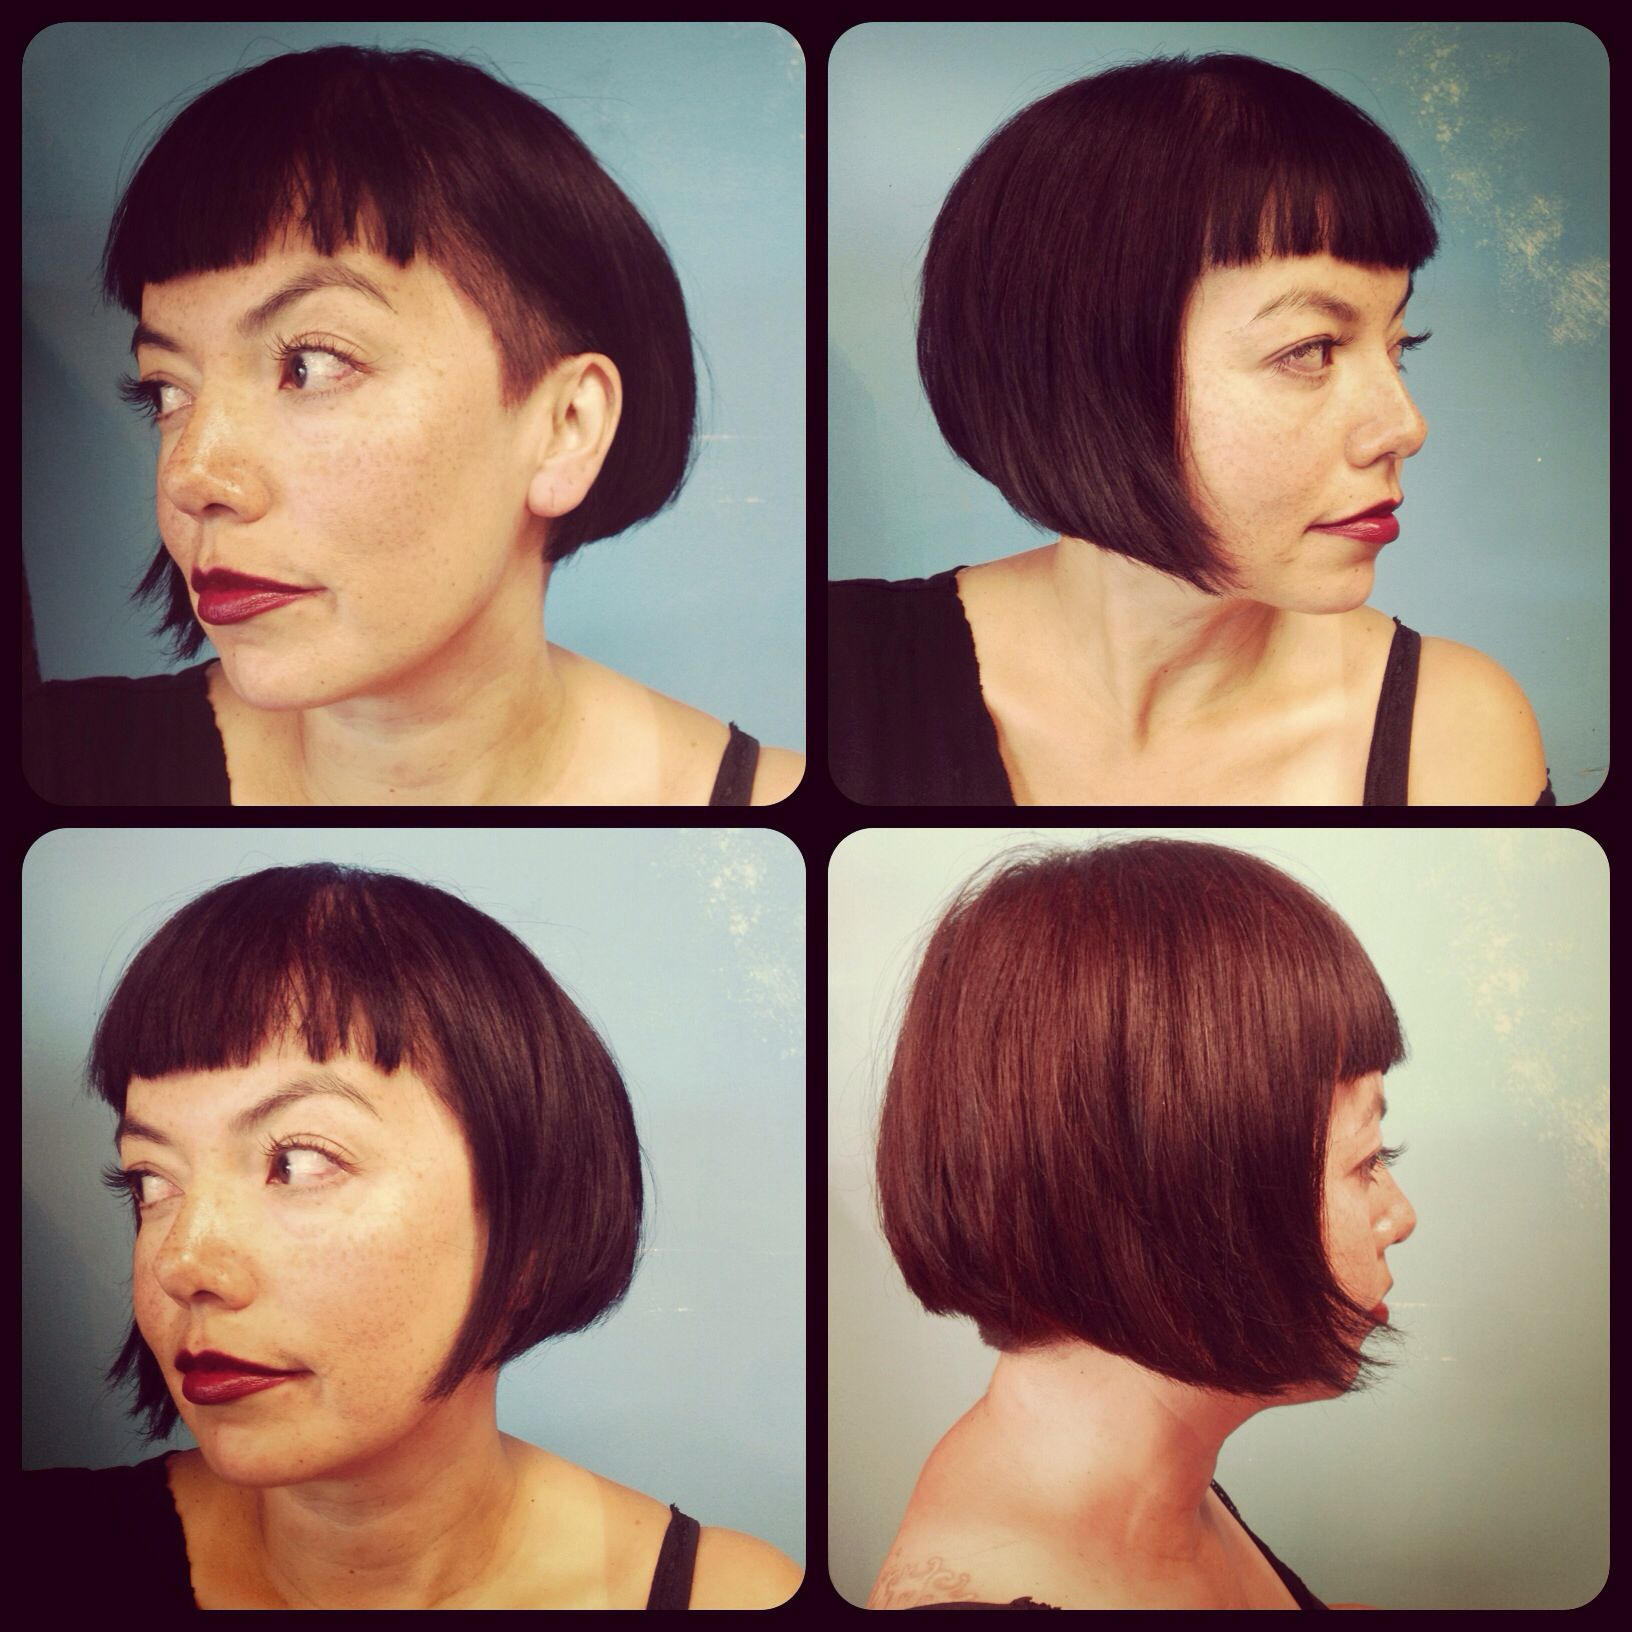 Cute short bob haircut with shaved side | Short hair dos, Short hair undercut, Shaved bob